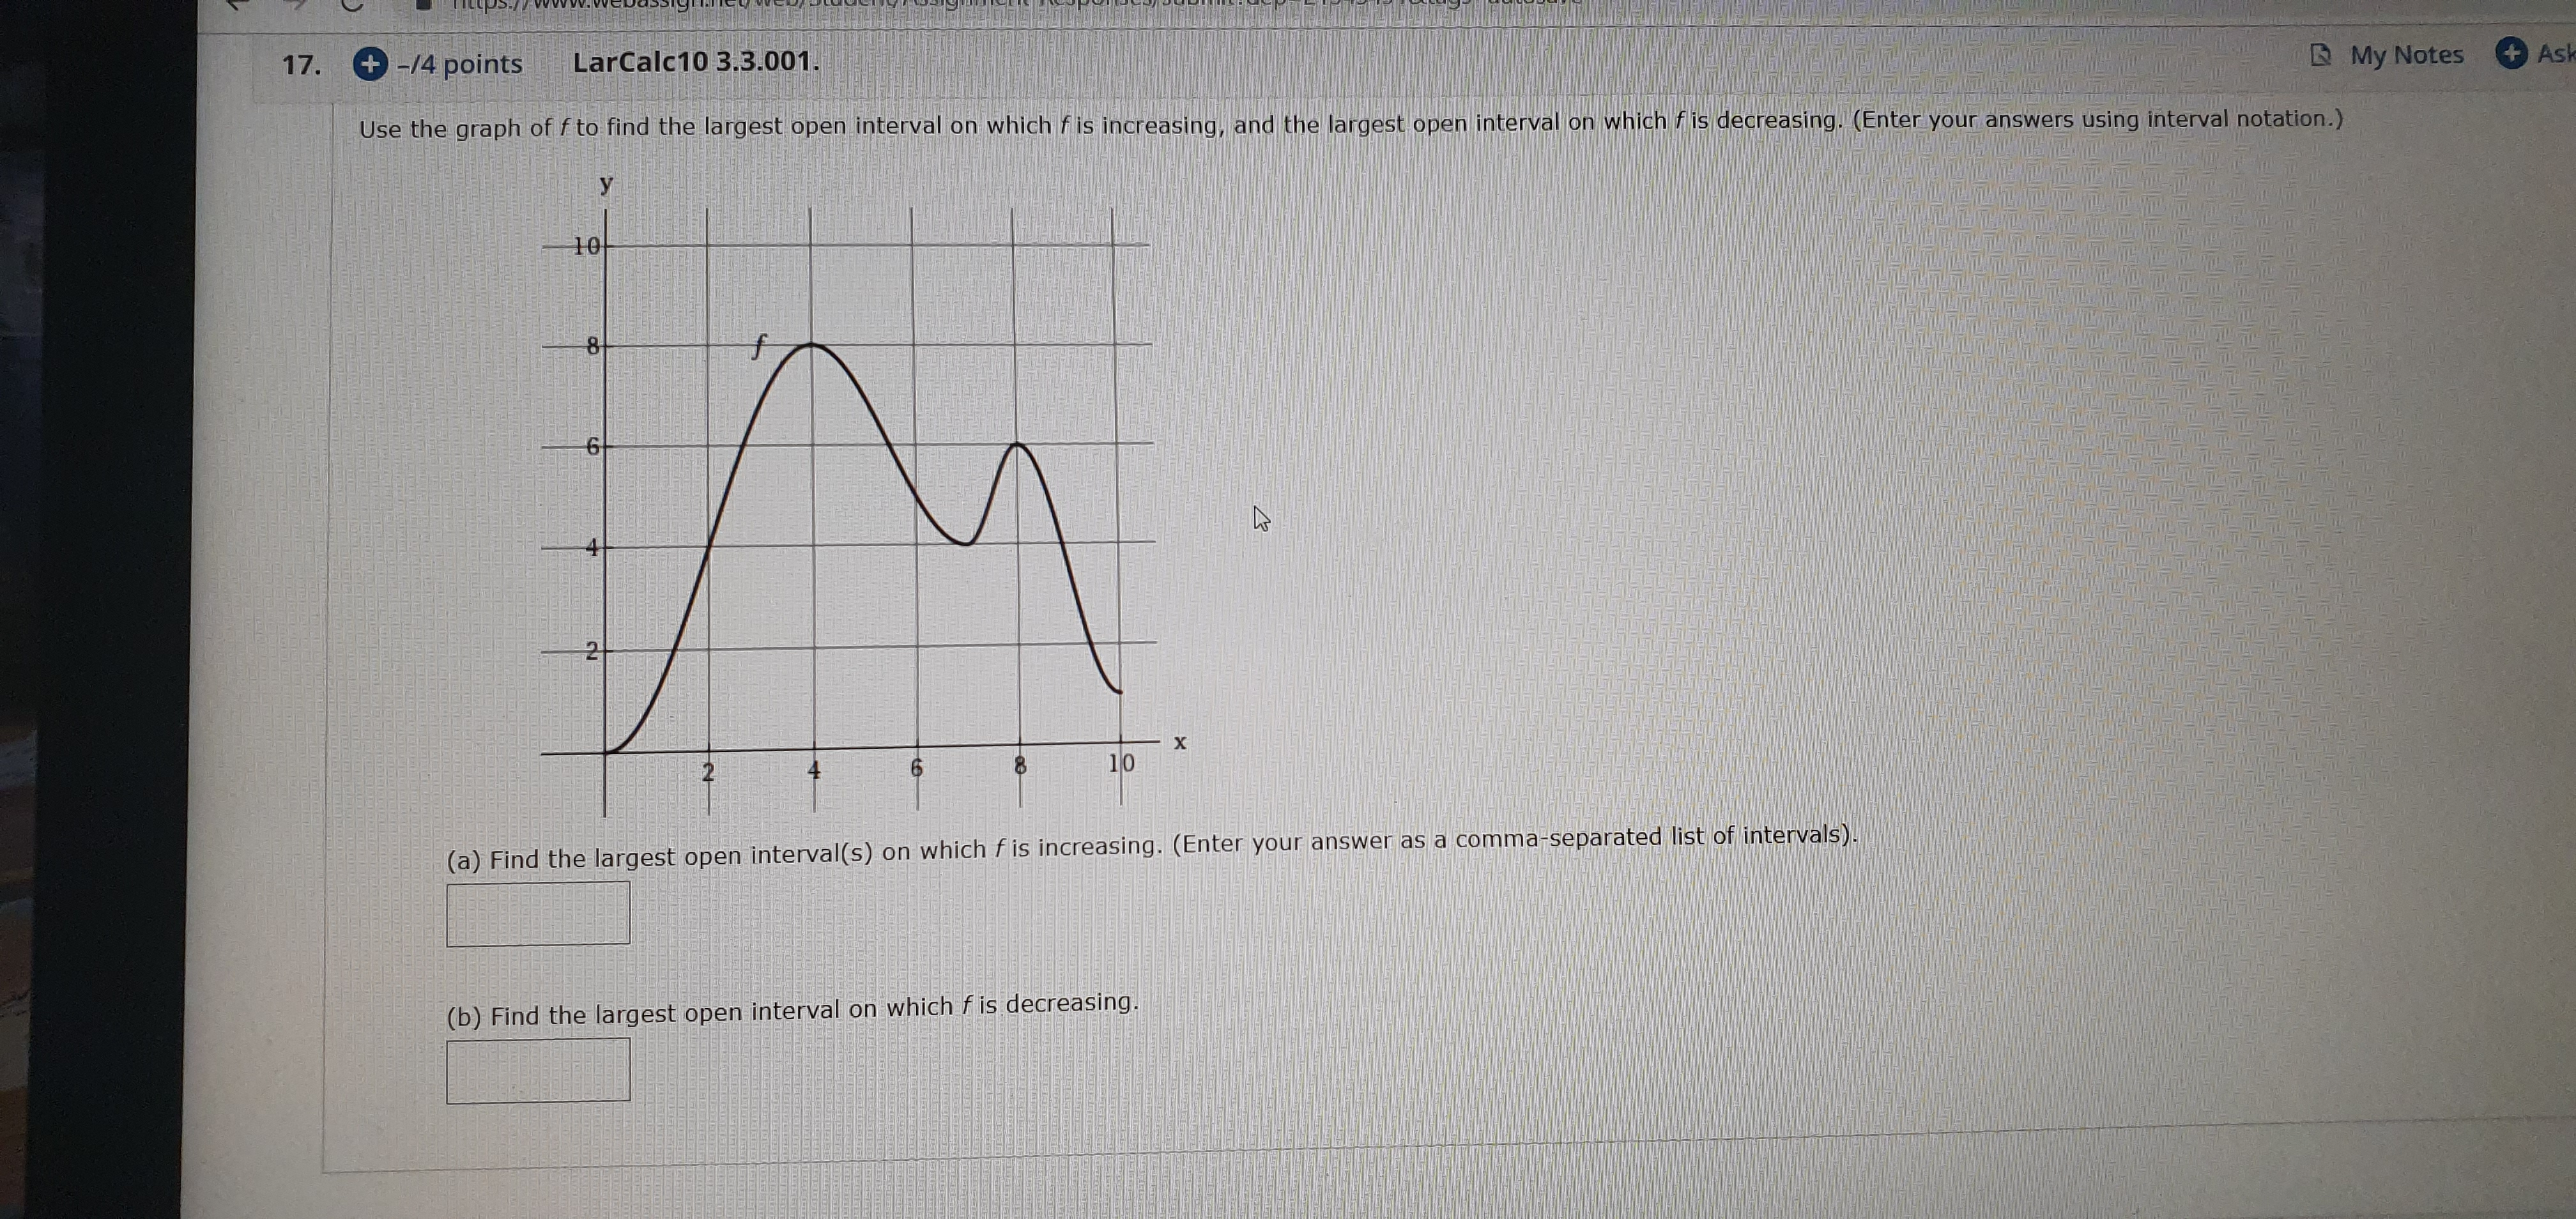 Ask My Notes -/4 points LarCalc10 3.3.001 17. using interval notation.) Use the graph of f to find the largest open interval on which f is increasing, and the largest open interval on which f is decreasing. (Enter your answers 10 8 X 10 4 (a) Find the largest open interval(s) on which f is increasing. (Enter your answer as a comma-separated list of intervals). (b) Find the largest open interval on which f is decreasing.